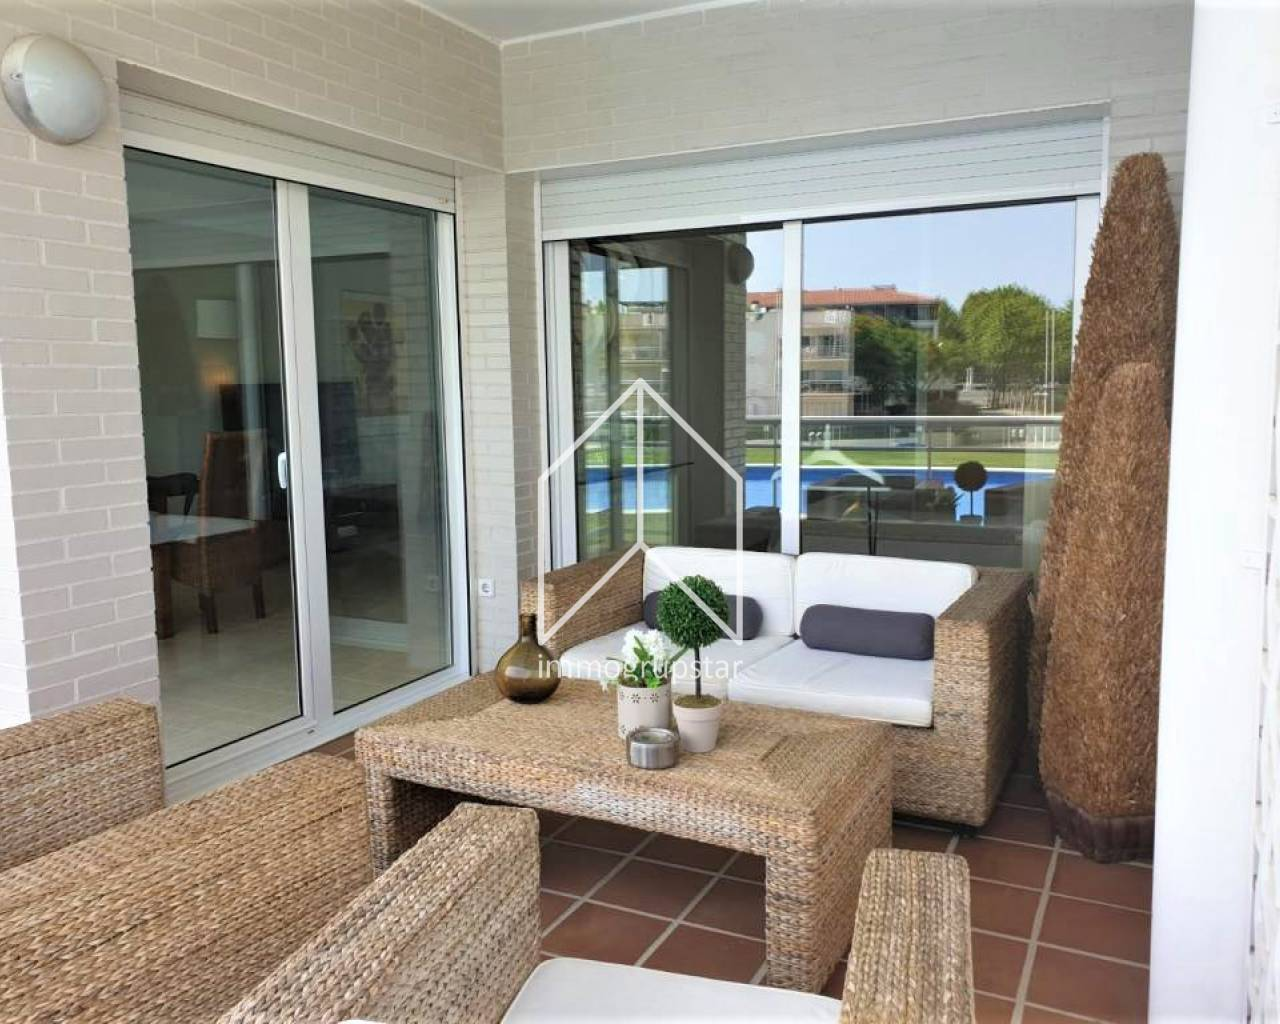 Appartement - Resale - Castell-Platja D'aro - PORT D'ARO